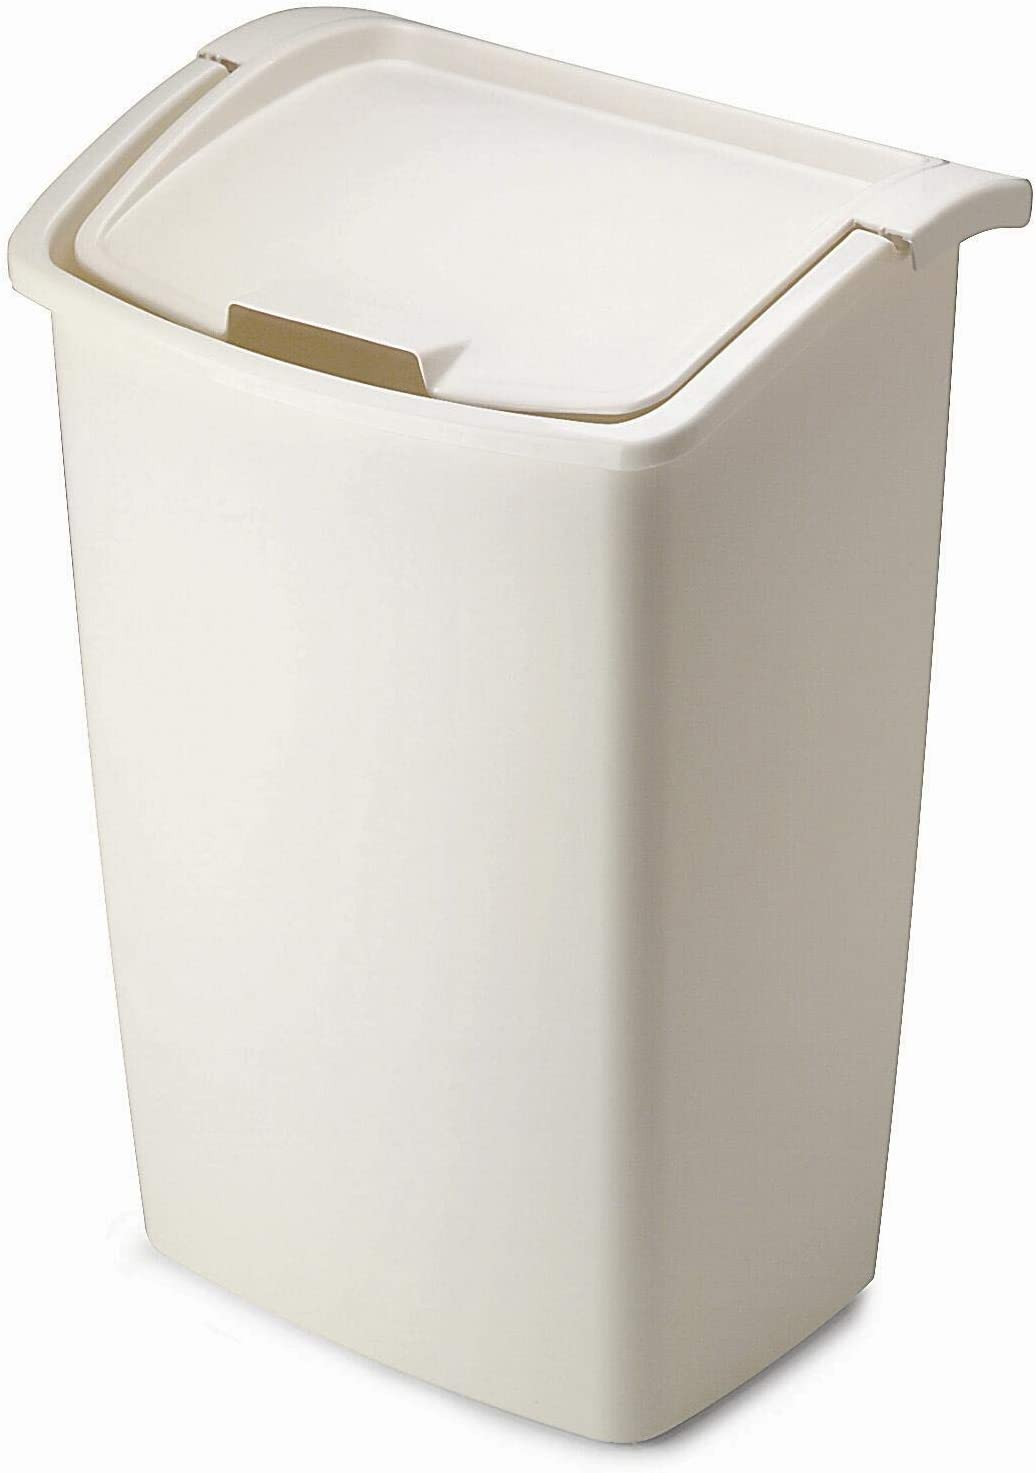 Rubbermaid FG280300BISQU Dual-Action Swing Lid Trash Can for Home, Kitchen, and Bathroom Garbage, 11.25 Gallon, Off-White Bisque, 45-quart, Tan: Home & Kitchen